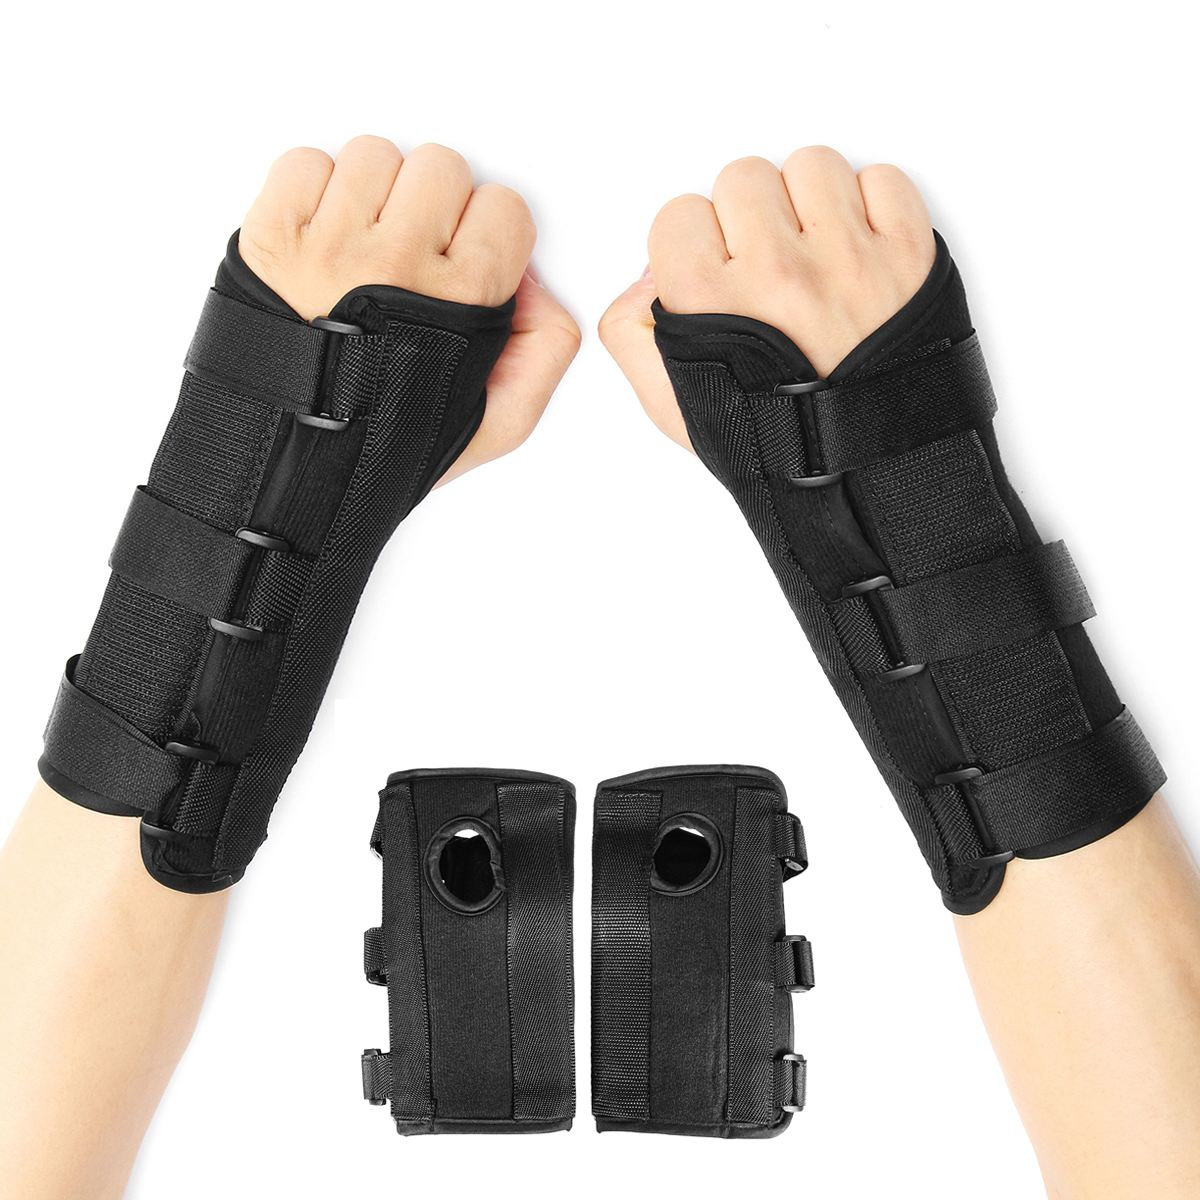 Best quality 1 Pair Carpal Tunnel Wrist Support Sprain Forearm Splint Orthotic Brace Bandage Belt Sports Wrist Protector belt